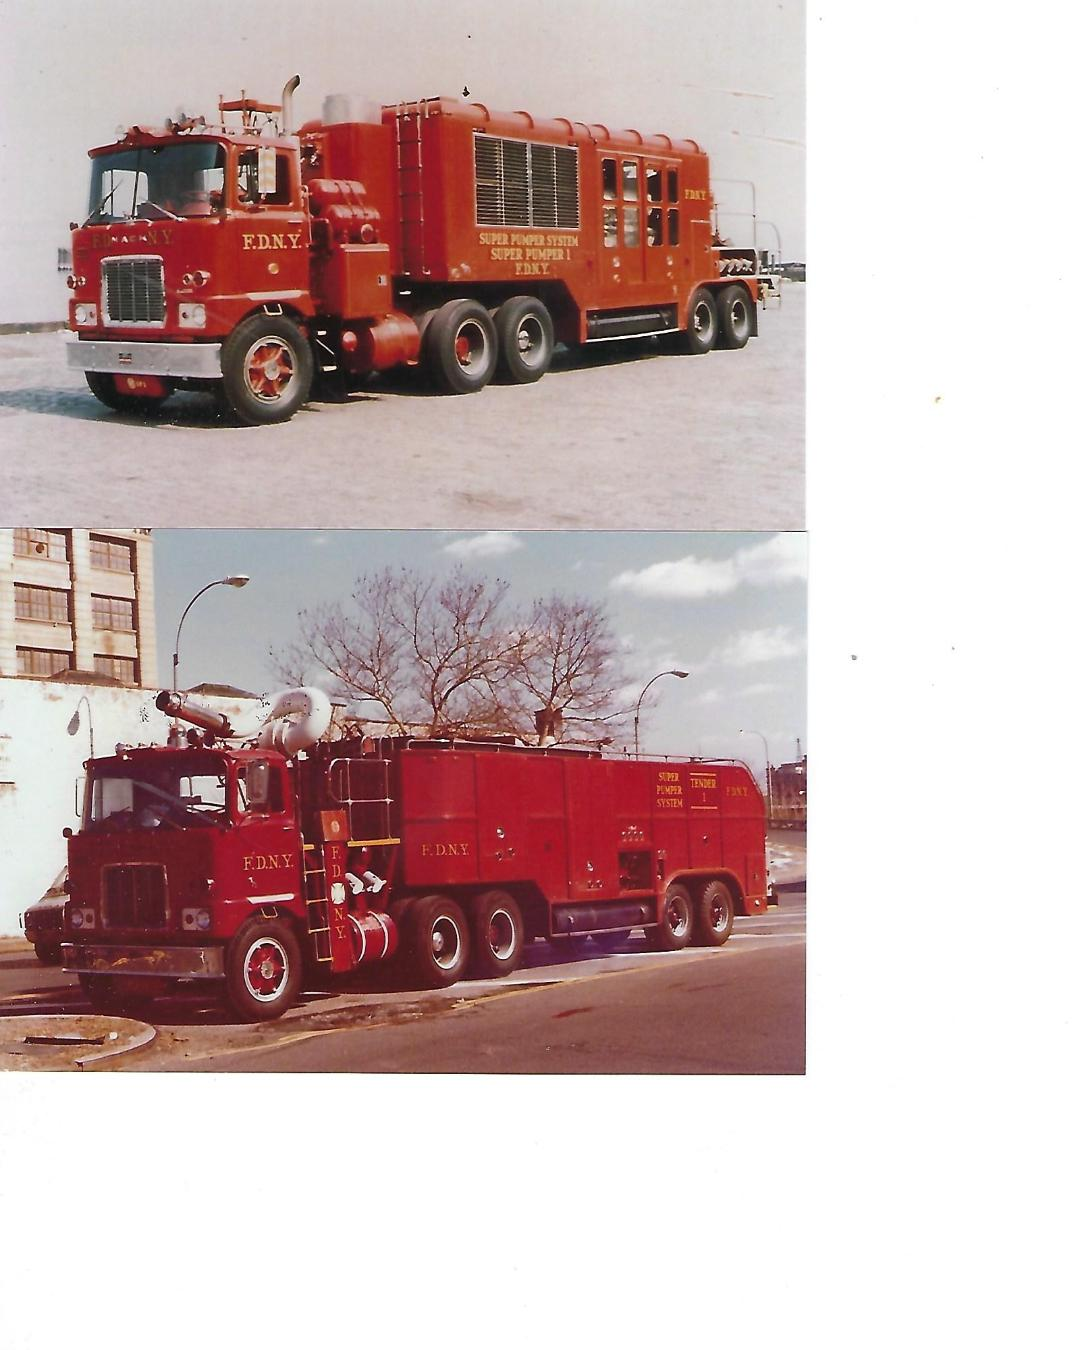 this is a picture of the super pumper that Bob Ogren drove -- RIP Robert Ogren